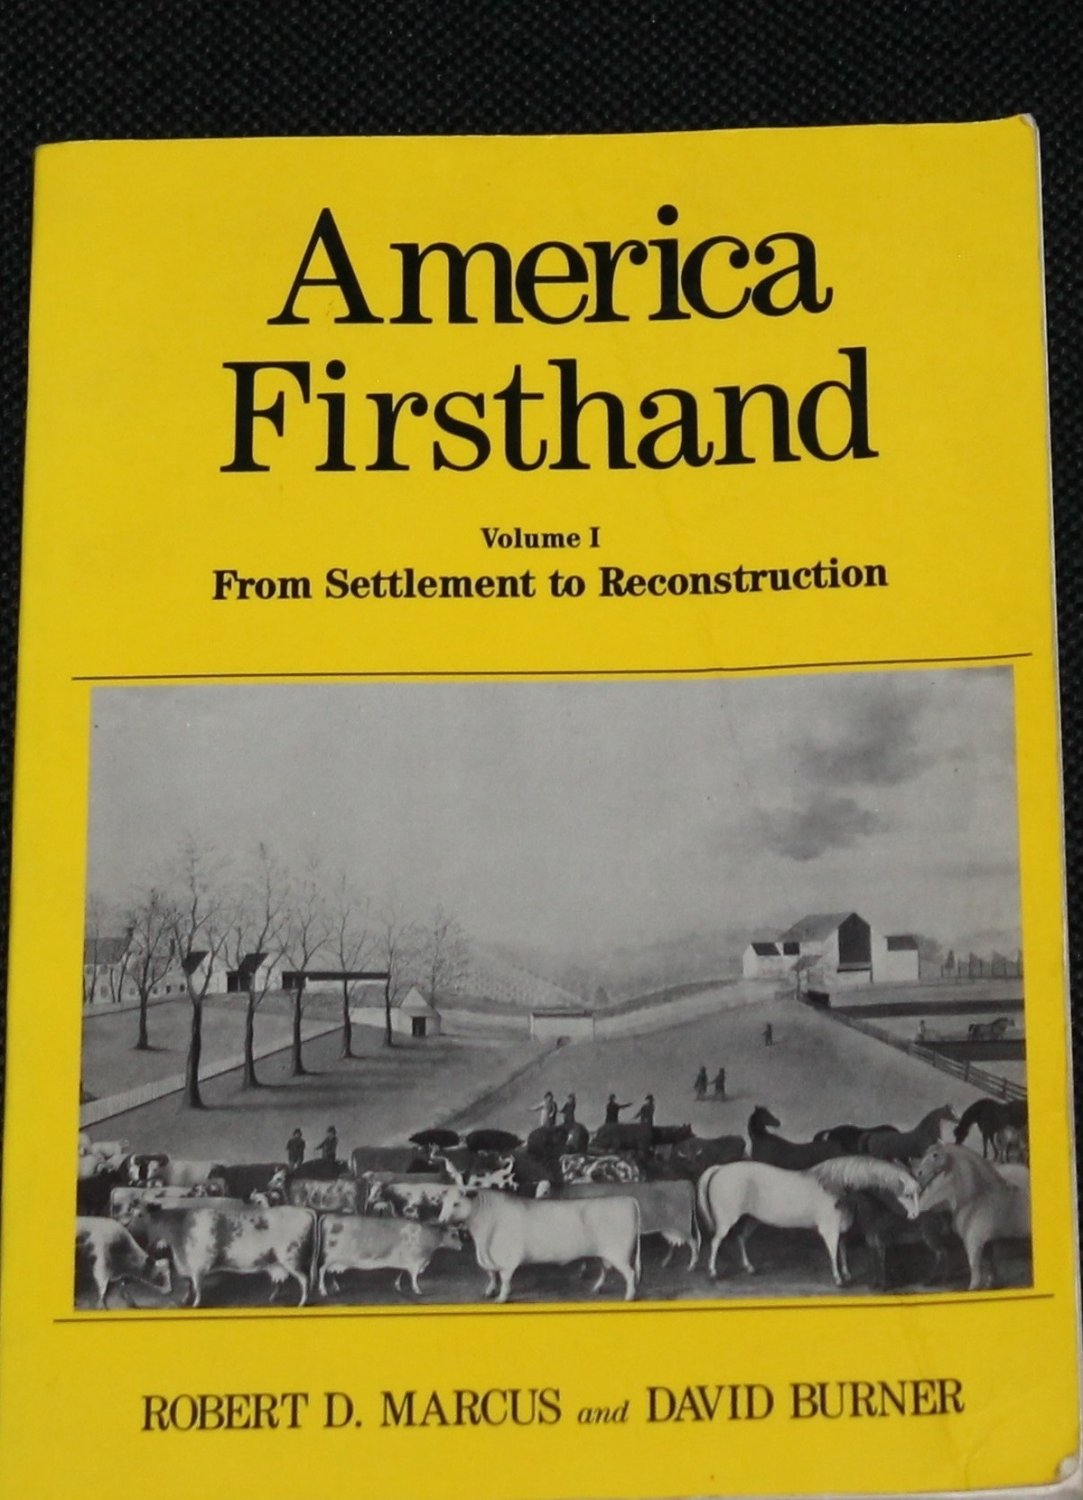 Firsthand America Vol. 1 From Settlement To Reconstruction history first hand book Robert D. Marcus